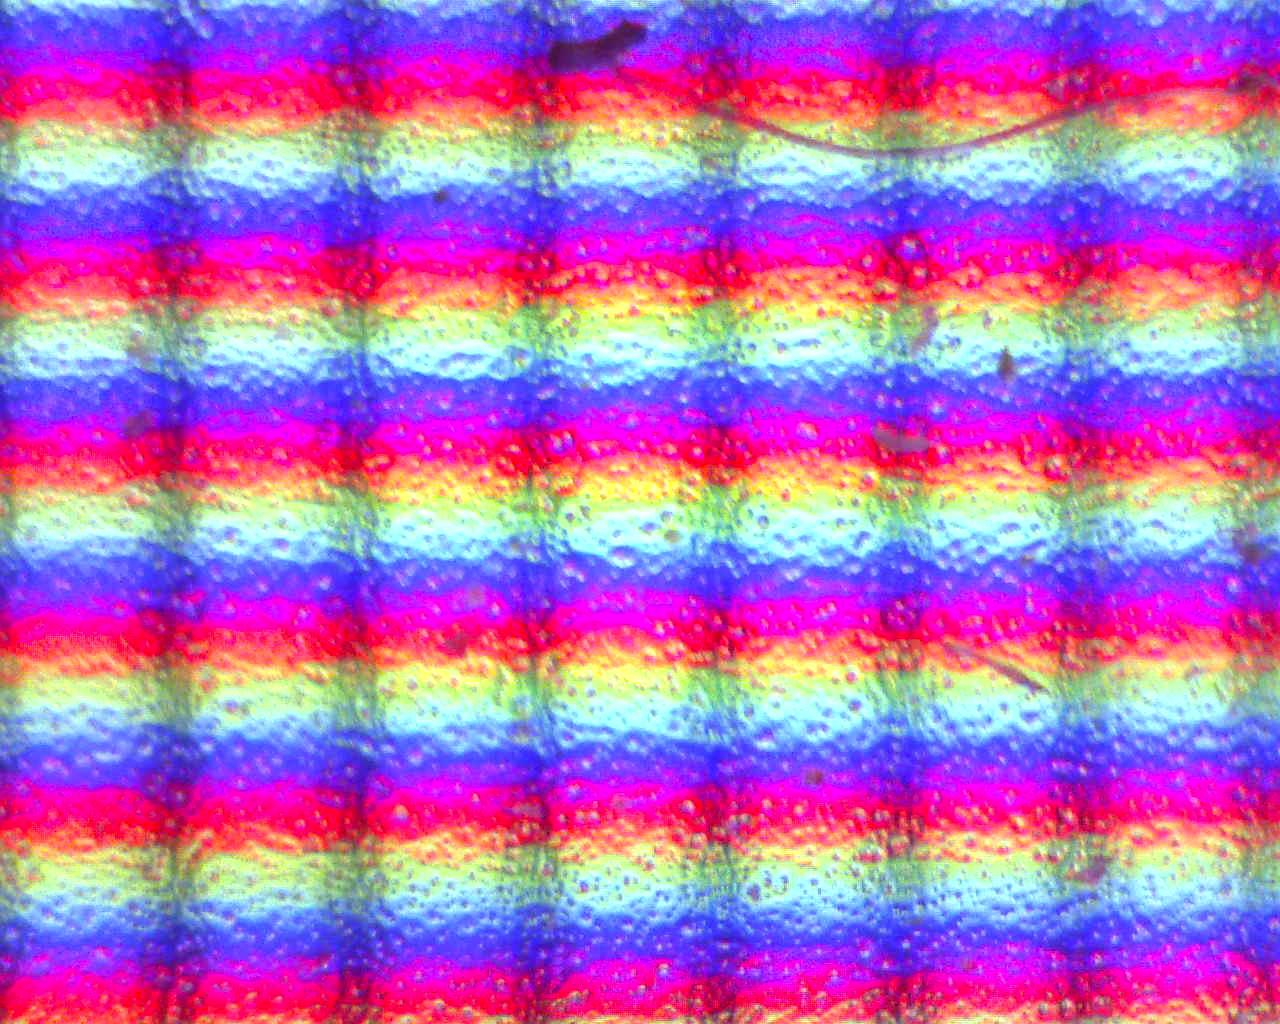 More interesting focusing on pixels from a TFT High magnification